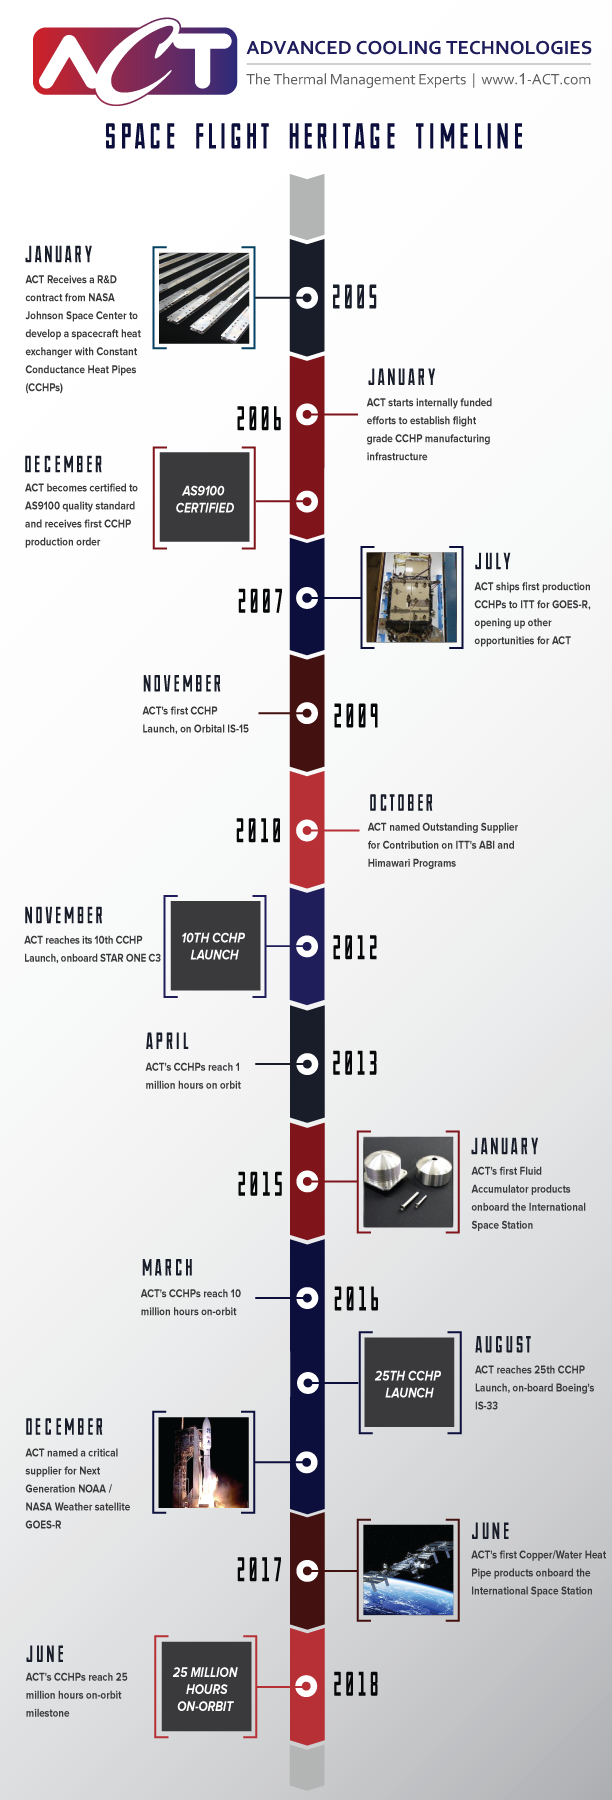 ACT Space Flight Heritage Timeline